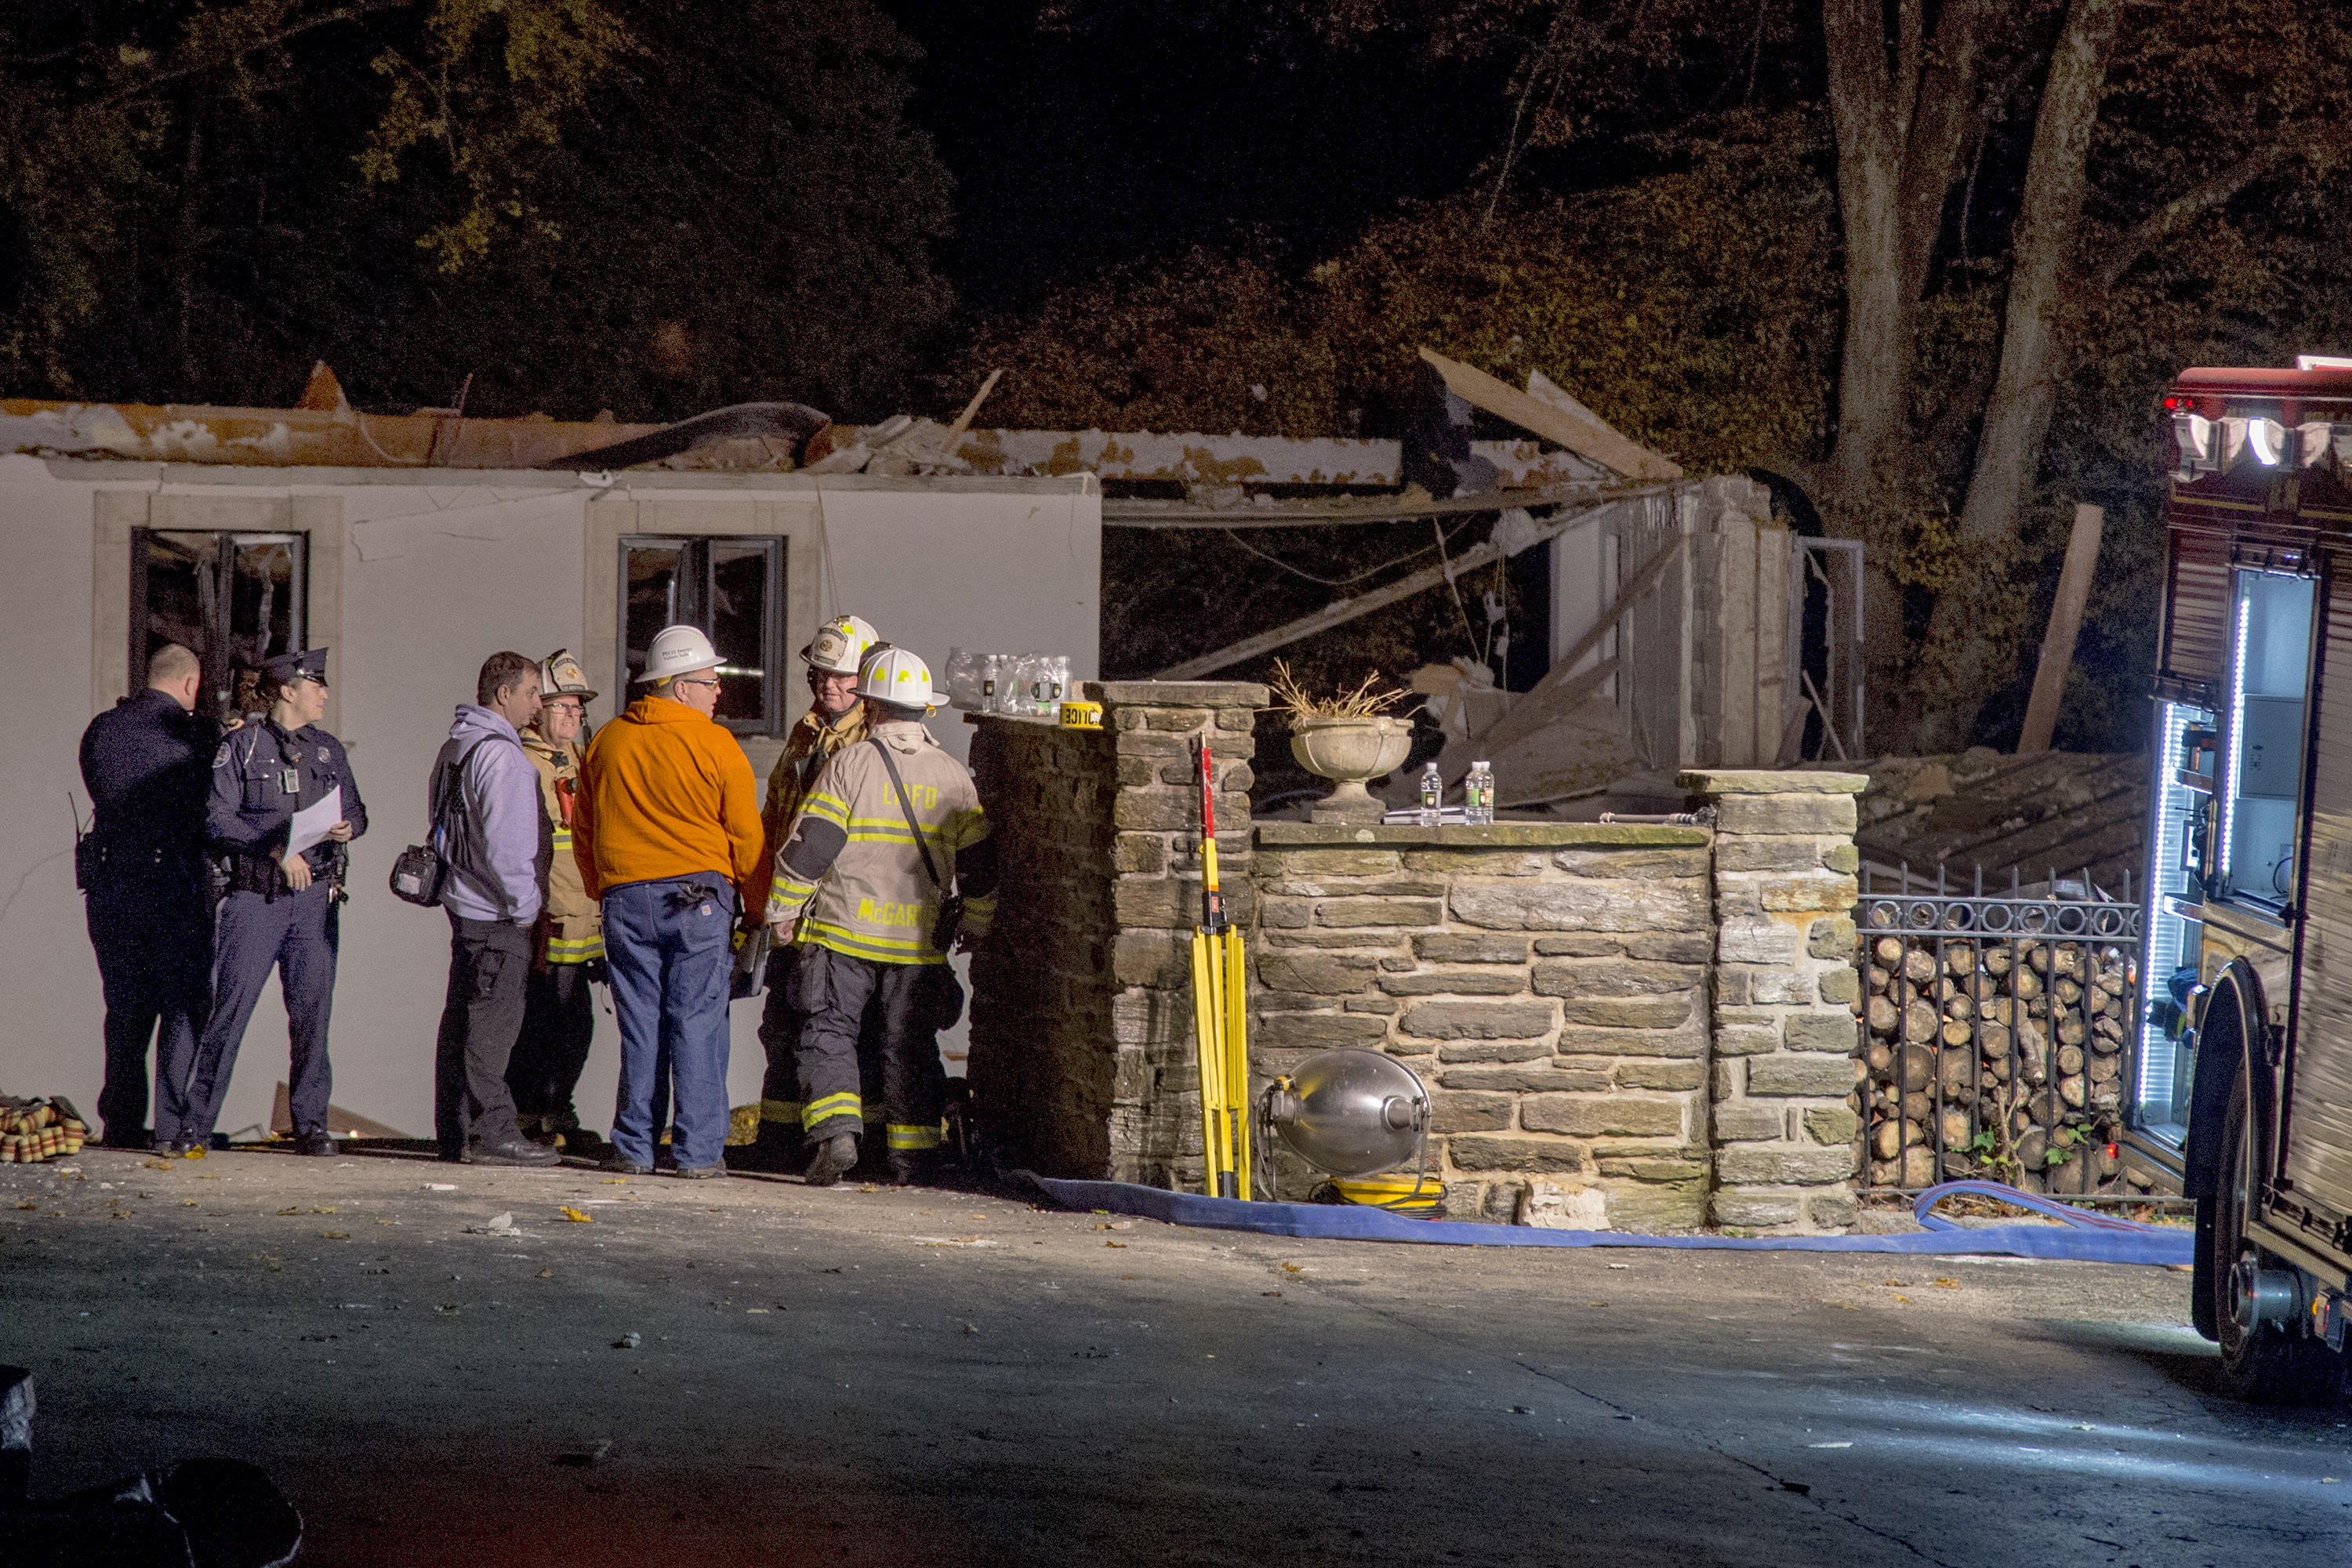 Police and fire officials gather around the leveled home on Dodds Lane in Gladwyne November 4, 2018. The explosion was so loud it could be heard for miles. TOM GRALISH / Staff Photographer